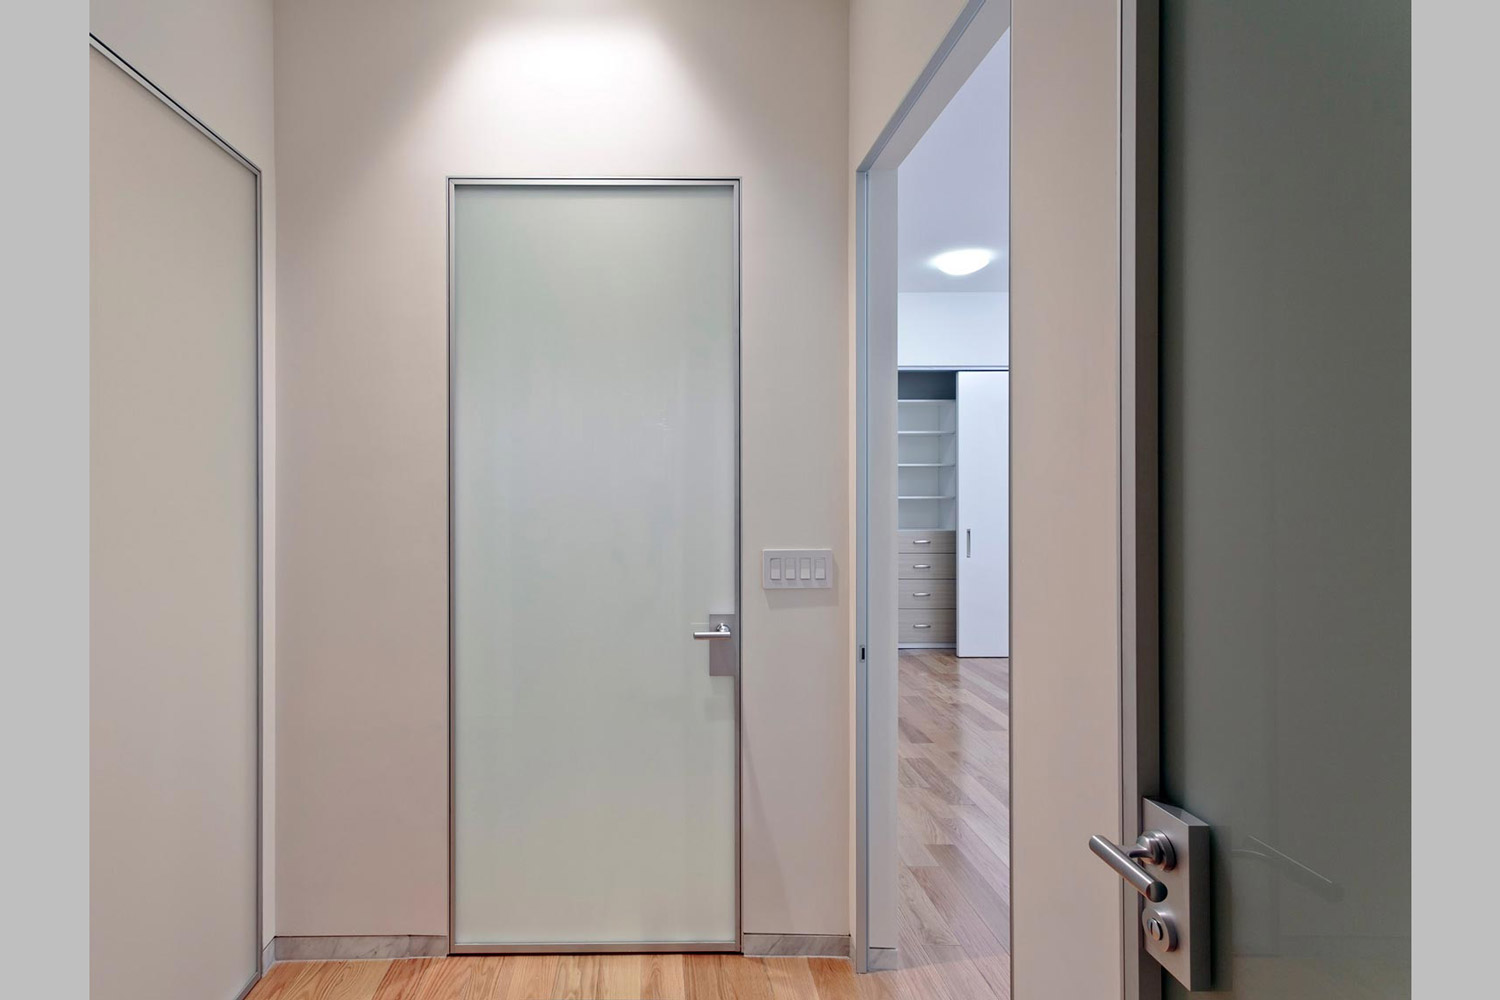 Glass doors give the loft a clean contemporary design.